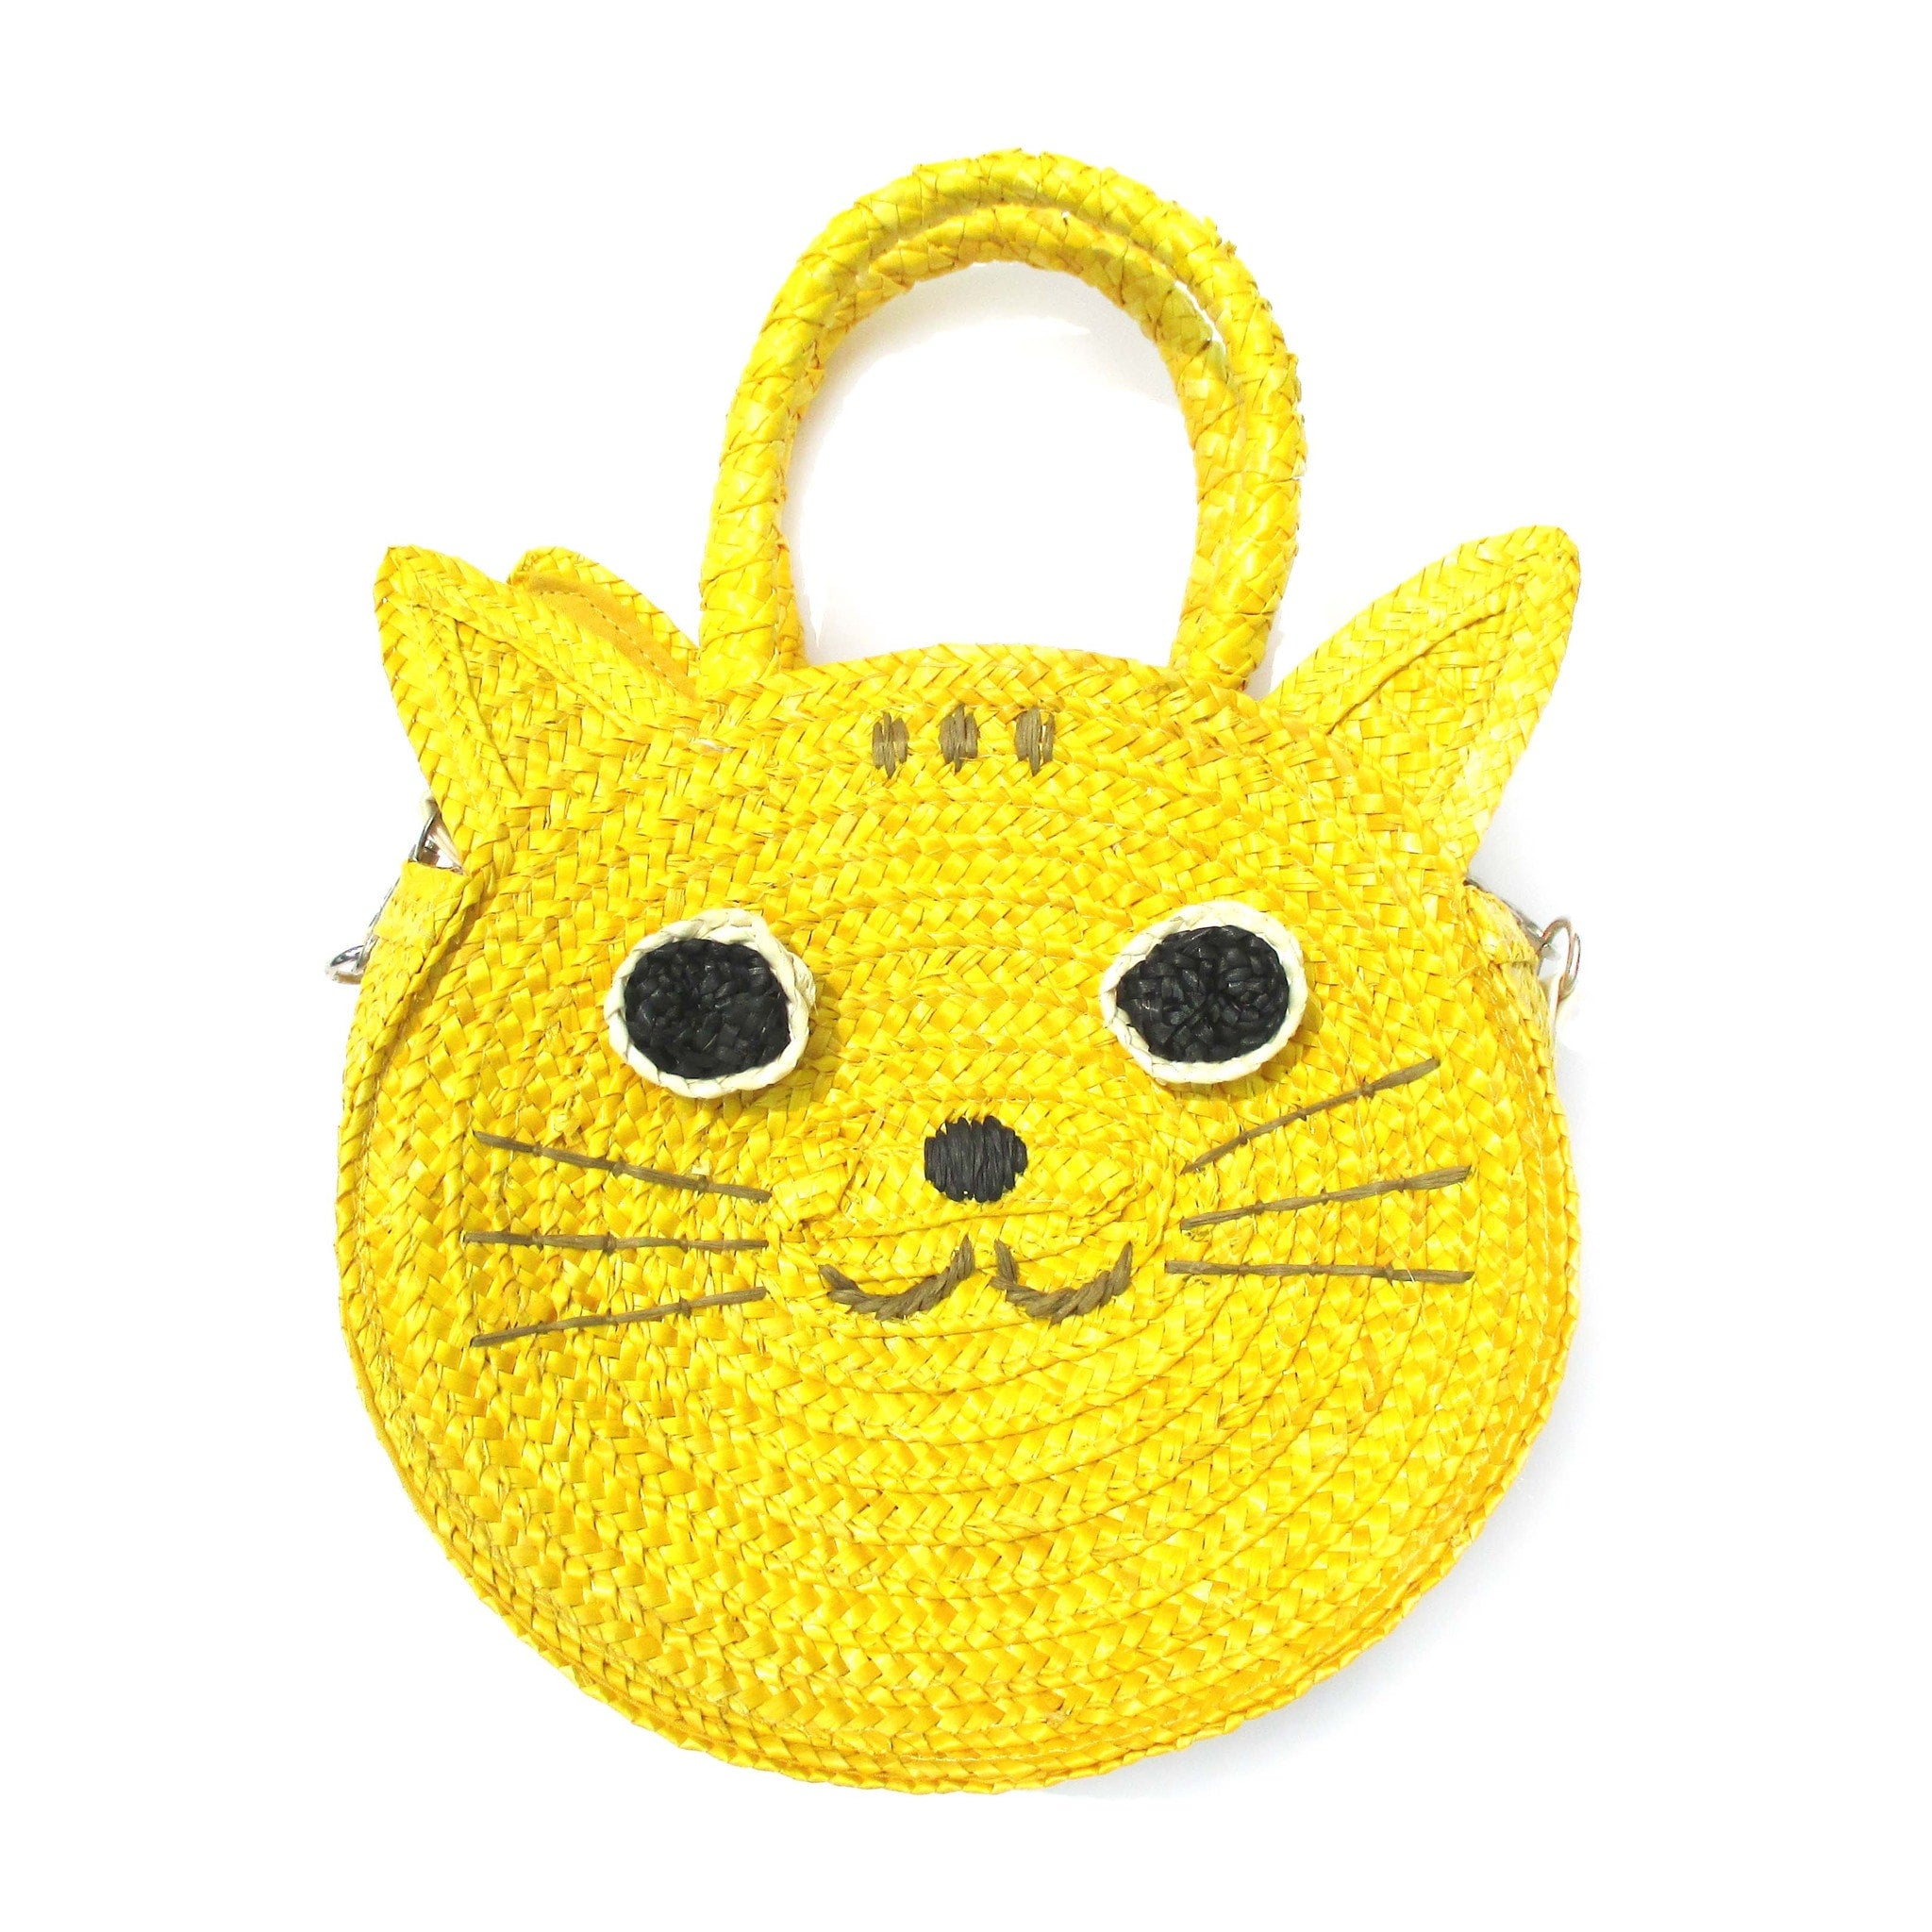 Kitty Cat Head Face Shape Straw Woven Shoulder Bag for Women in Yellow